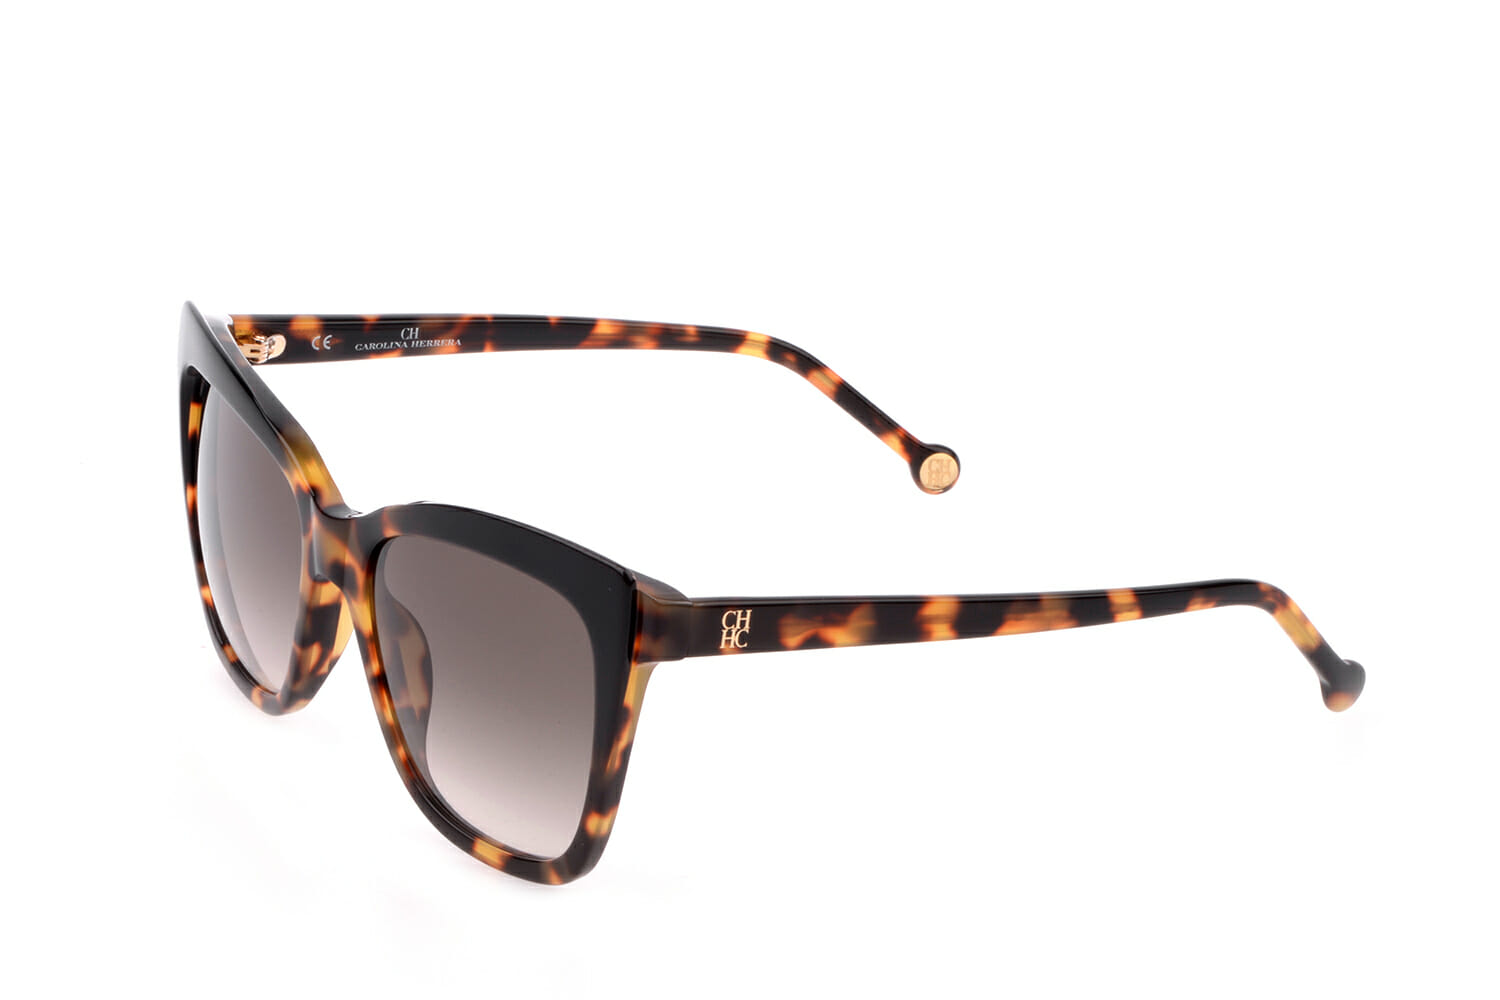 ch carolina herrera women eyewear SIDE